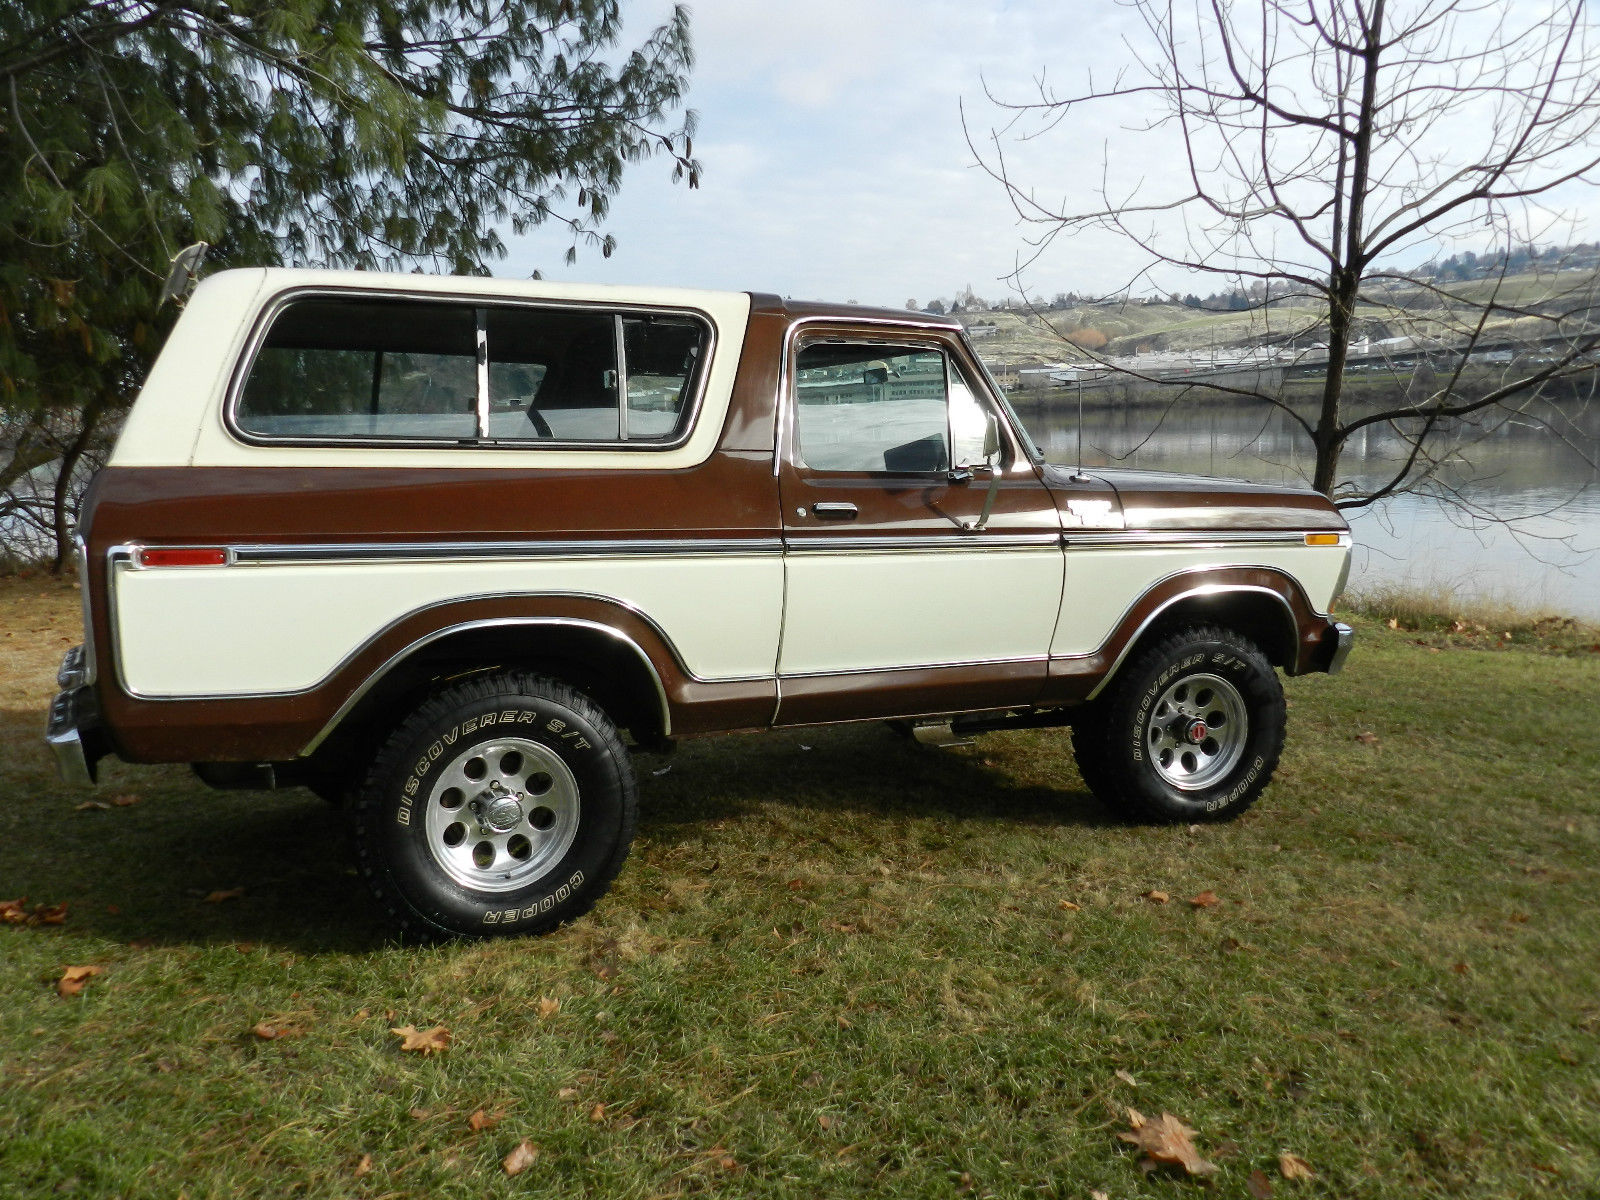 ford f150 bronco battlefield formations diagram 1979 4x4 xlt rare orignal paint and body